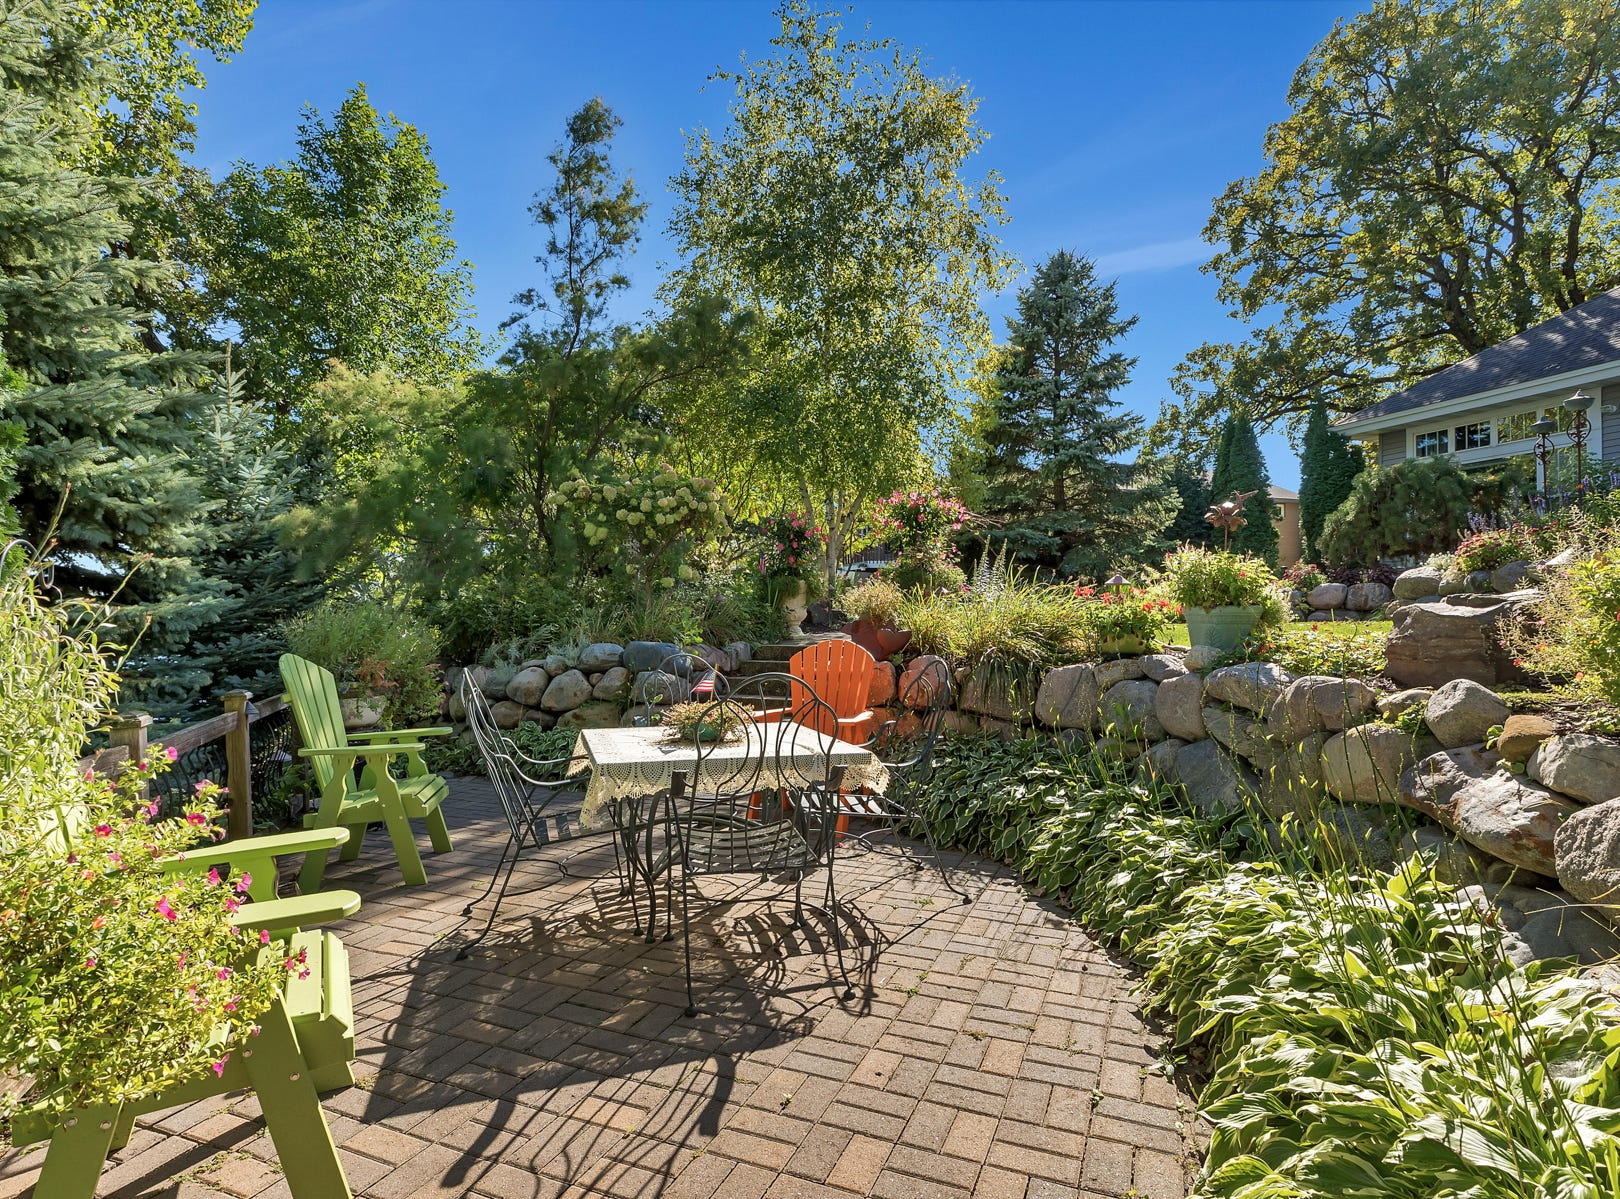 Nearby stairs lead down to a paver walkway and patio surrounded by lush green plantings and stunning views of the lake.